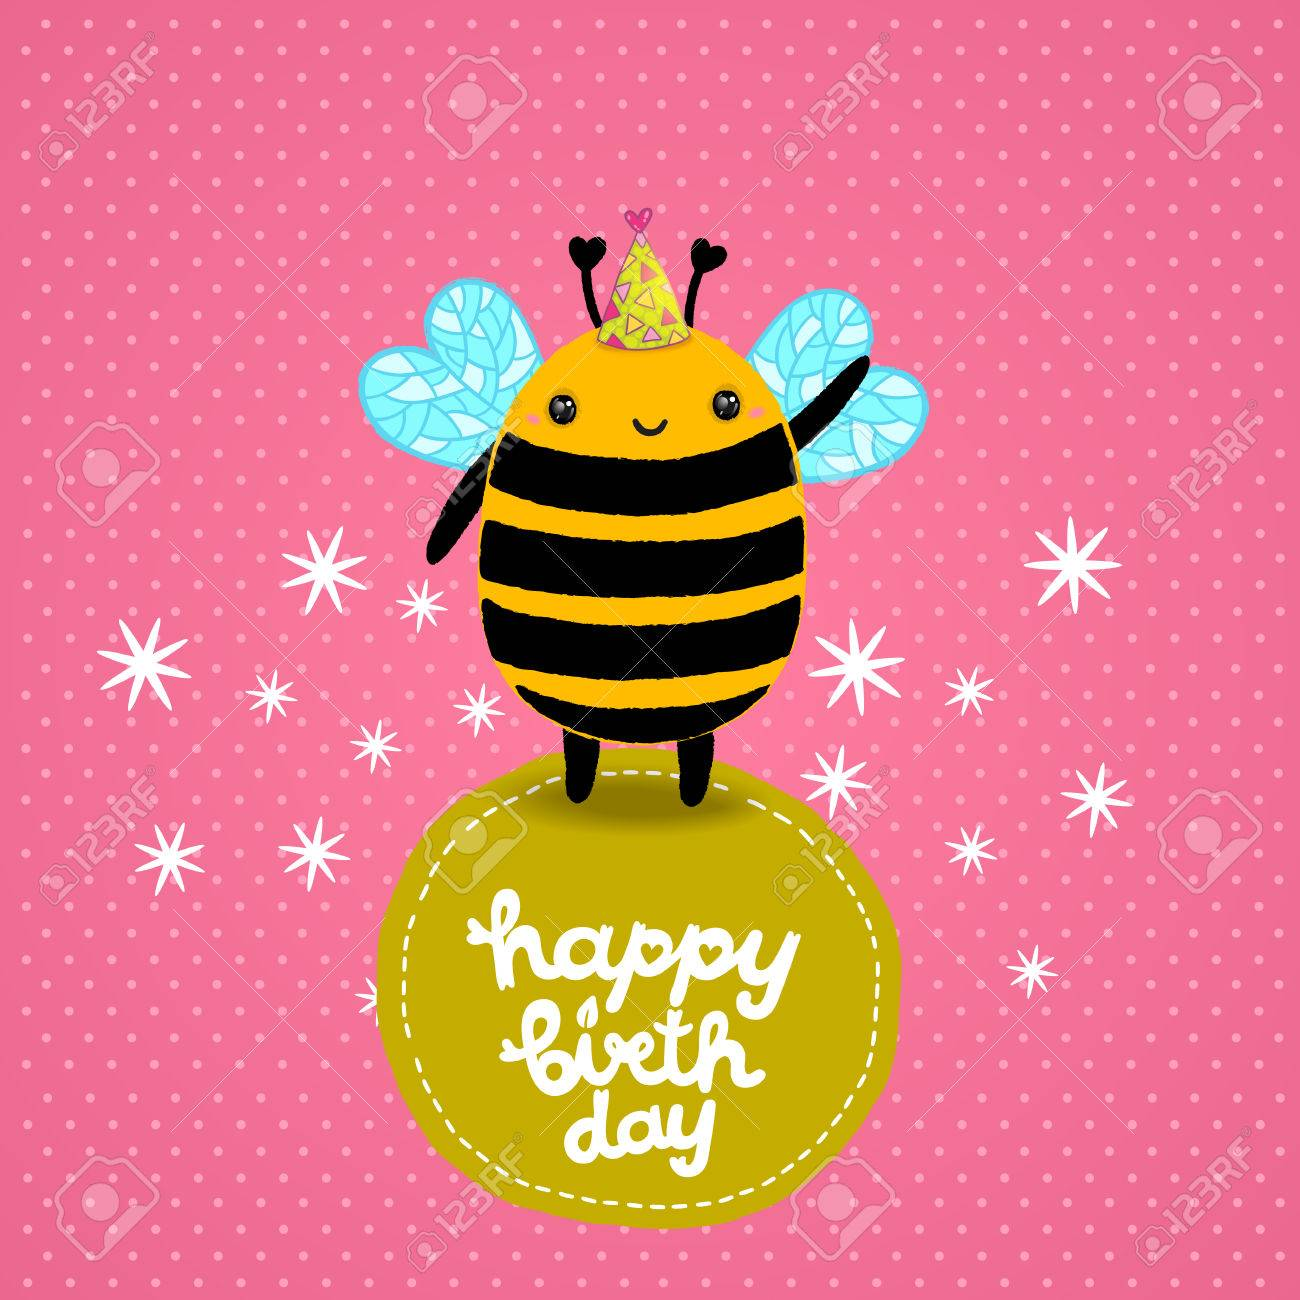 happy birthday card background a bee vector holiday party happy birthday card background a bee vector holiday party template stock vector 29315663